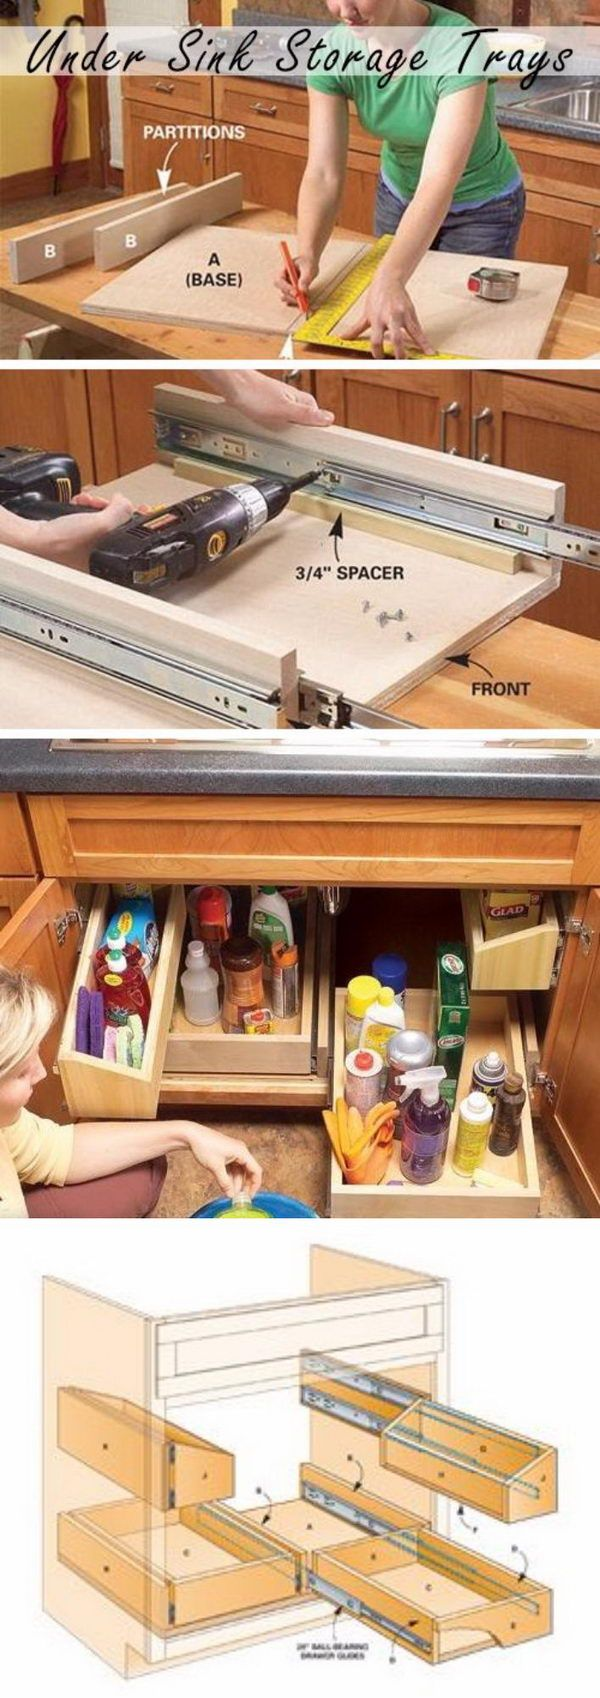 DIY Pull Out Kitchen Sink Storage Trays. | DIY Furniture Small Rooms ...